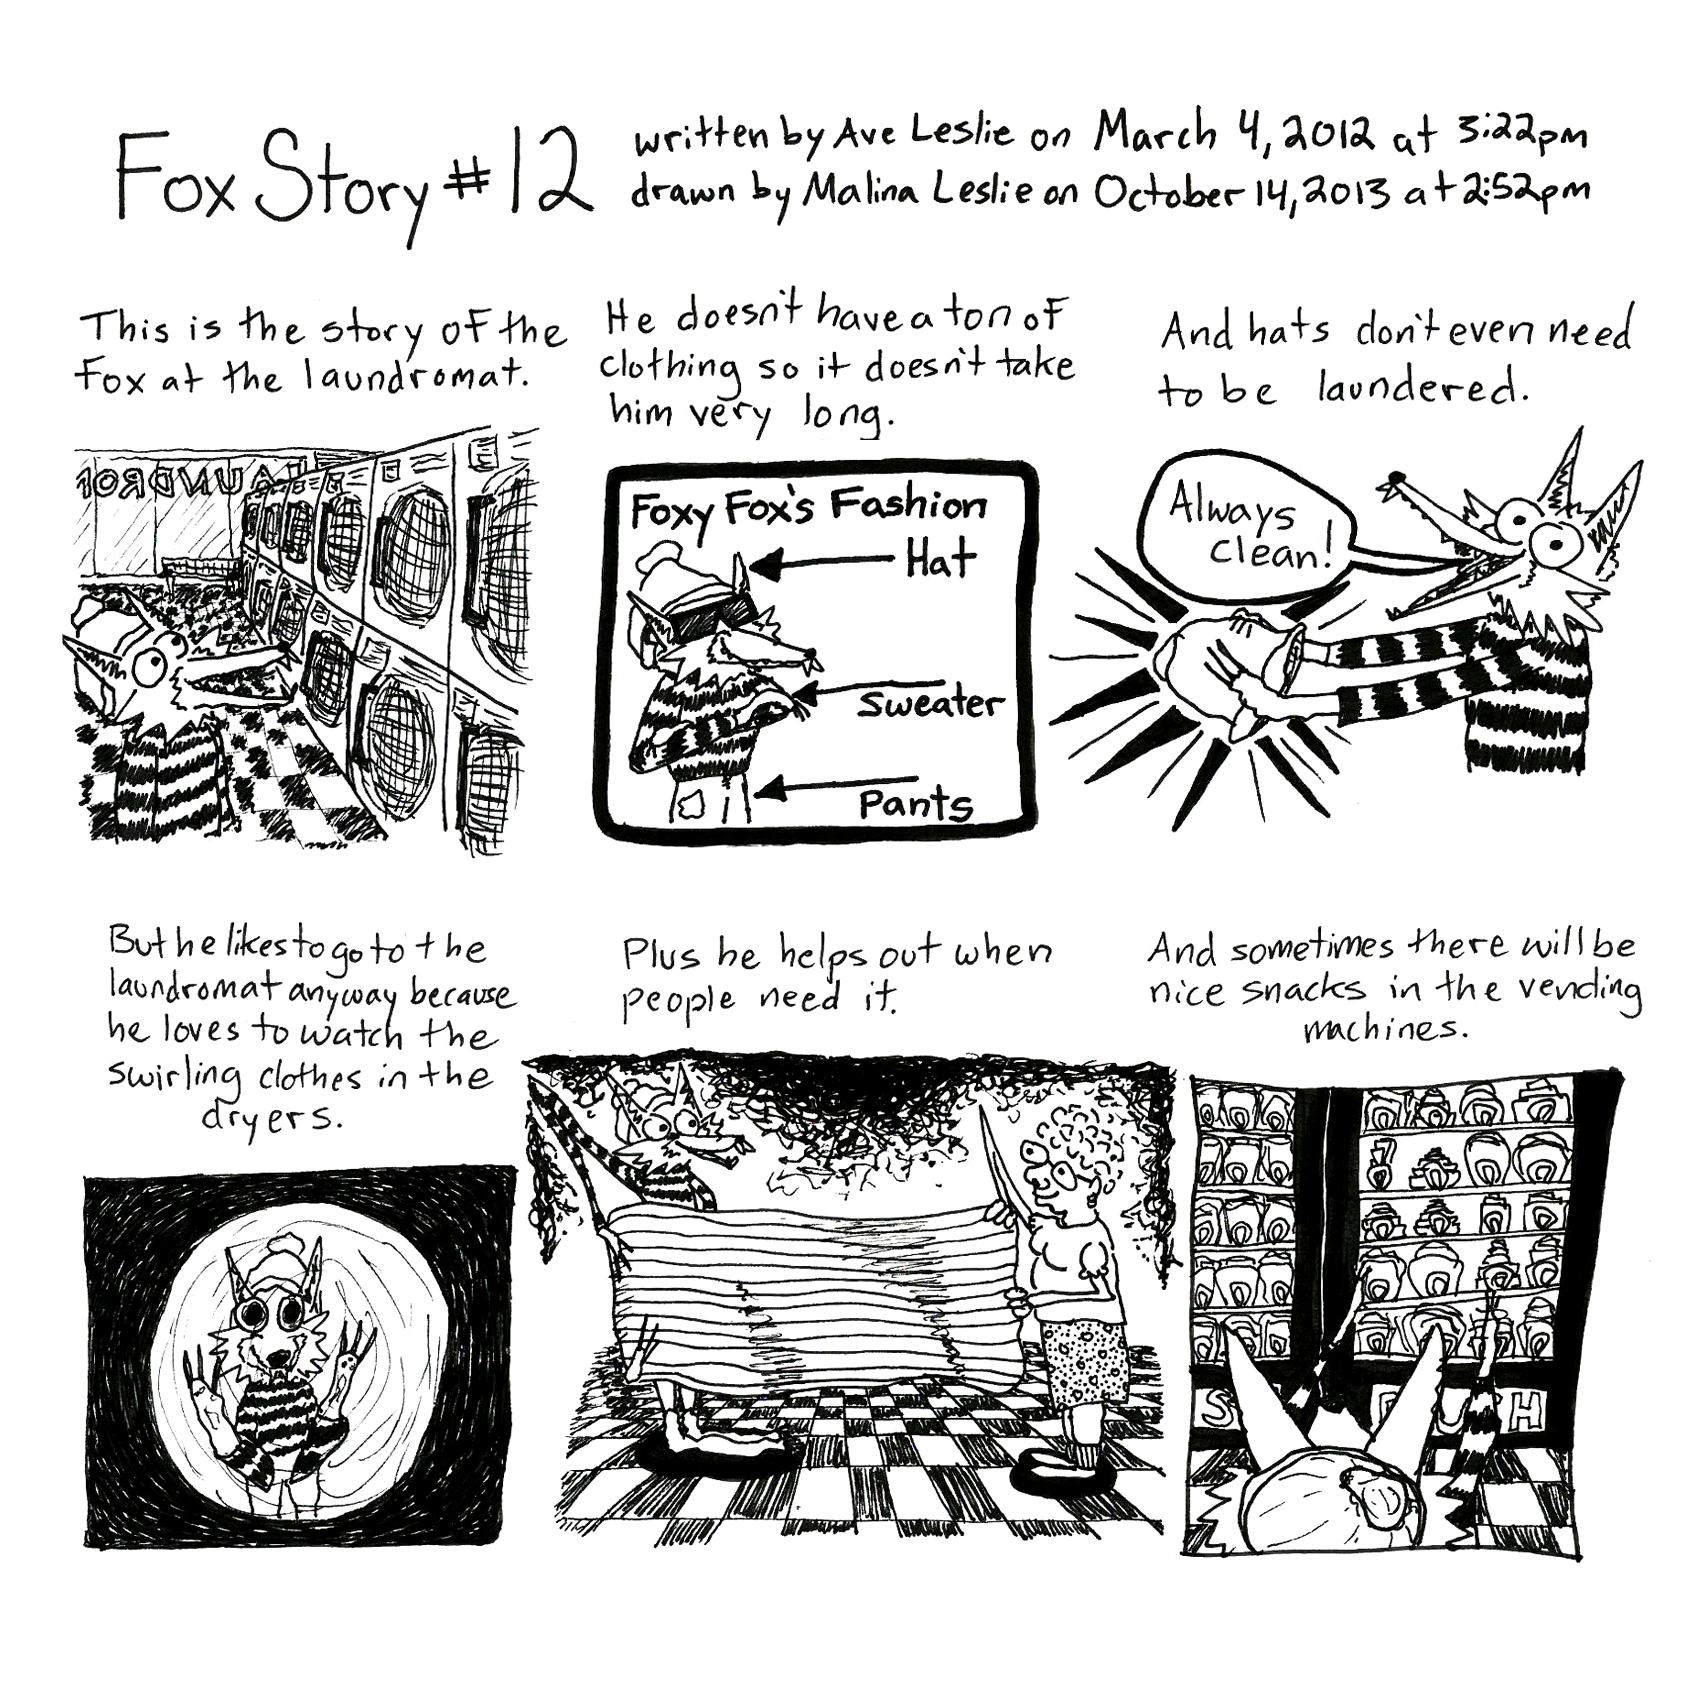 Fox Story 12 Part 1